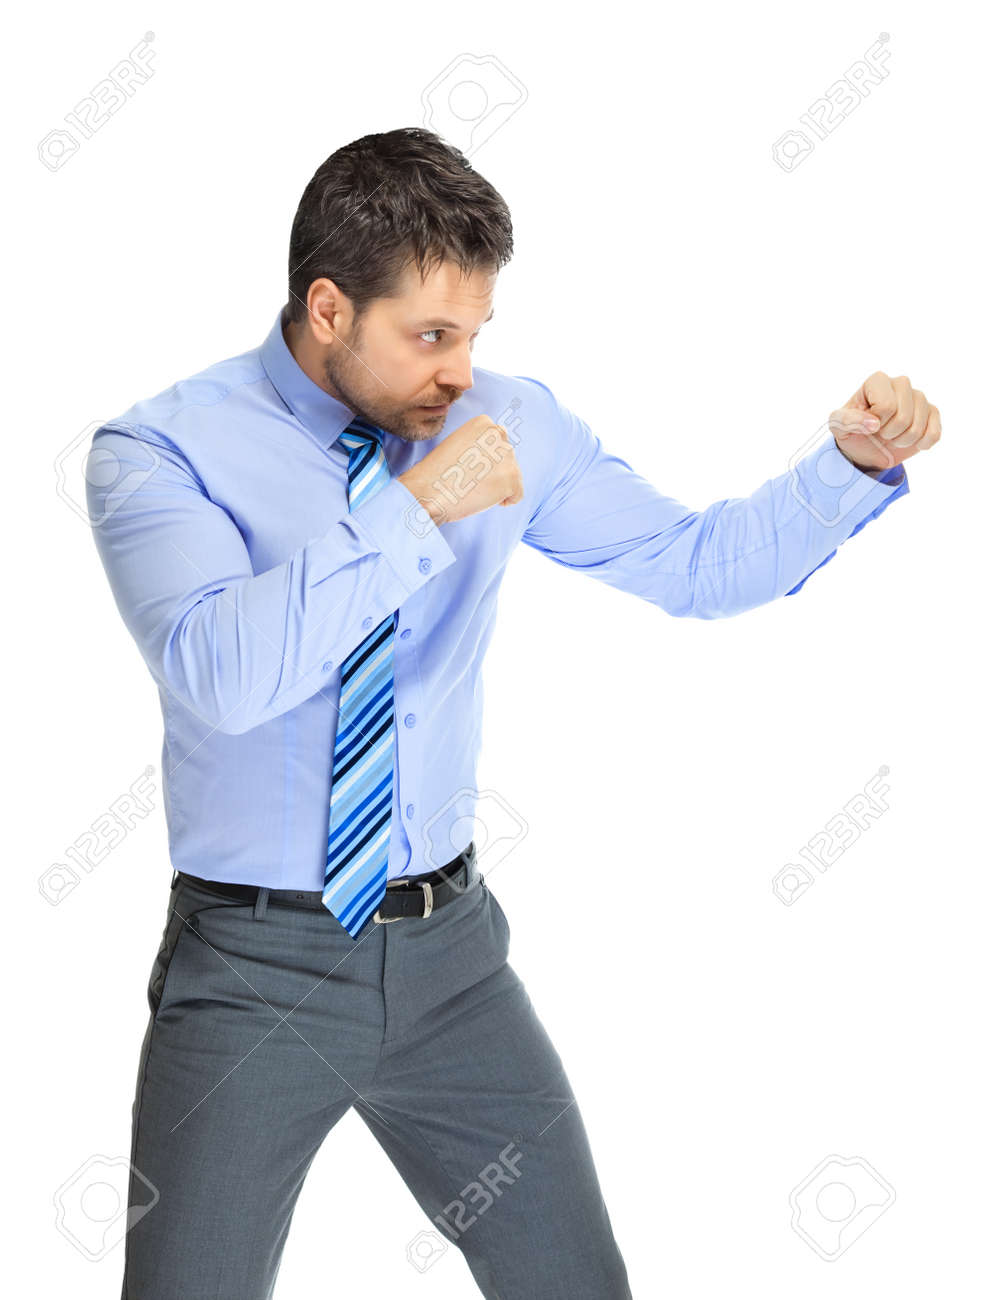 office clerk in boxing stance on white background stock photo office clerk in boxing stance on white background stock photo 18310363